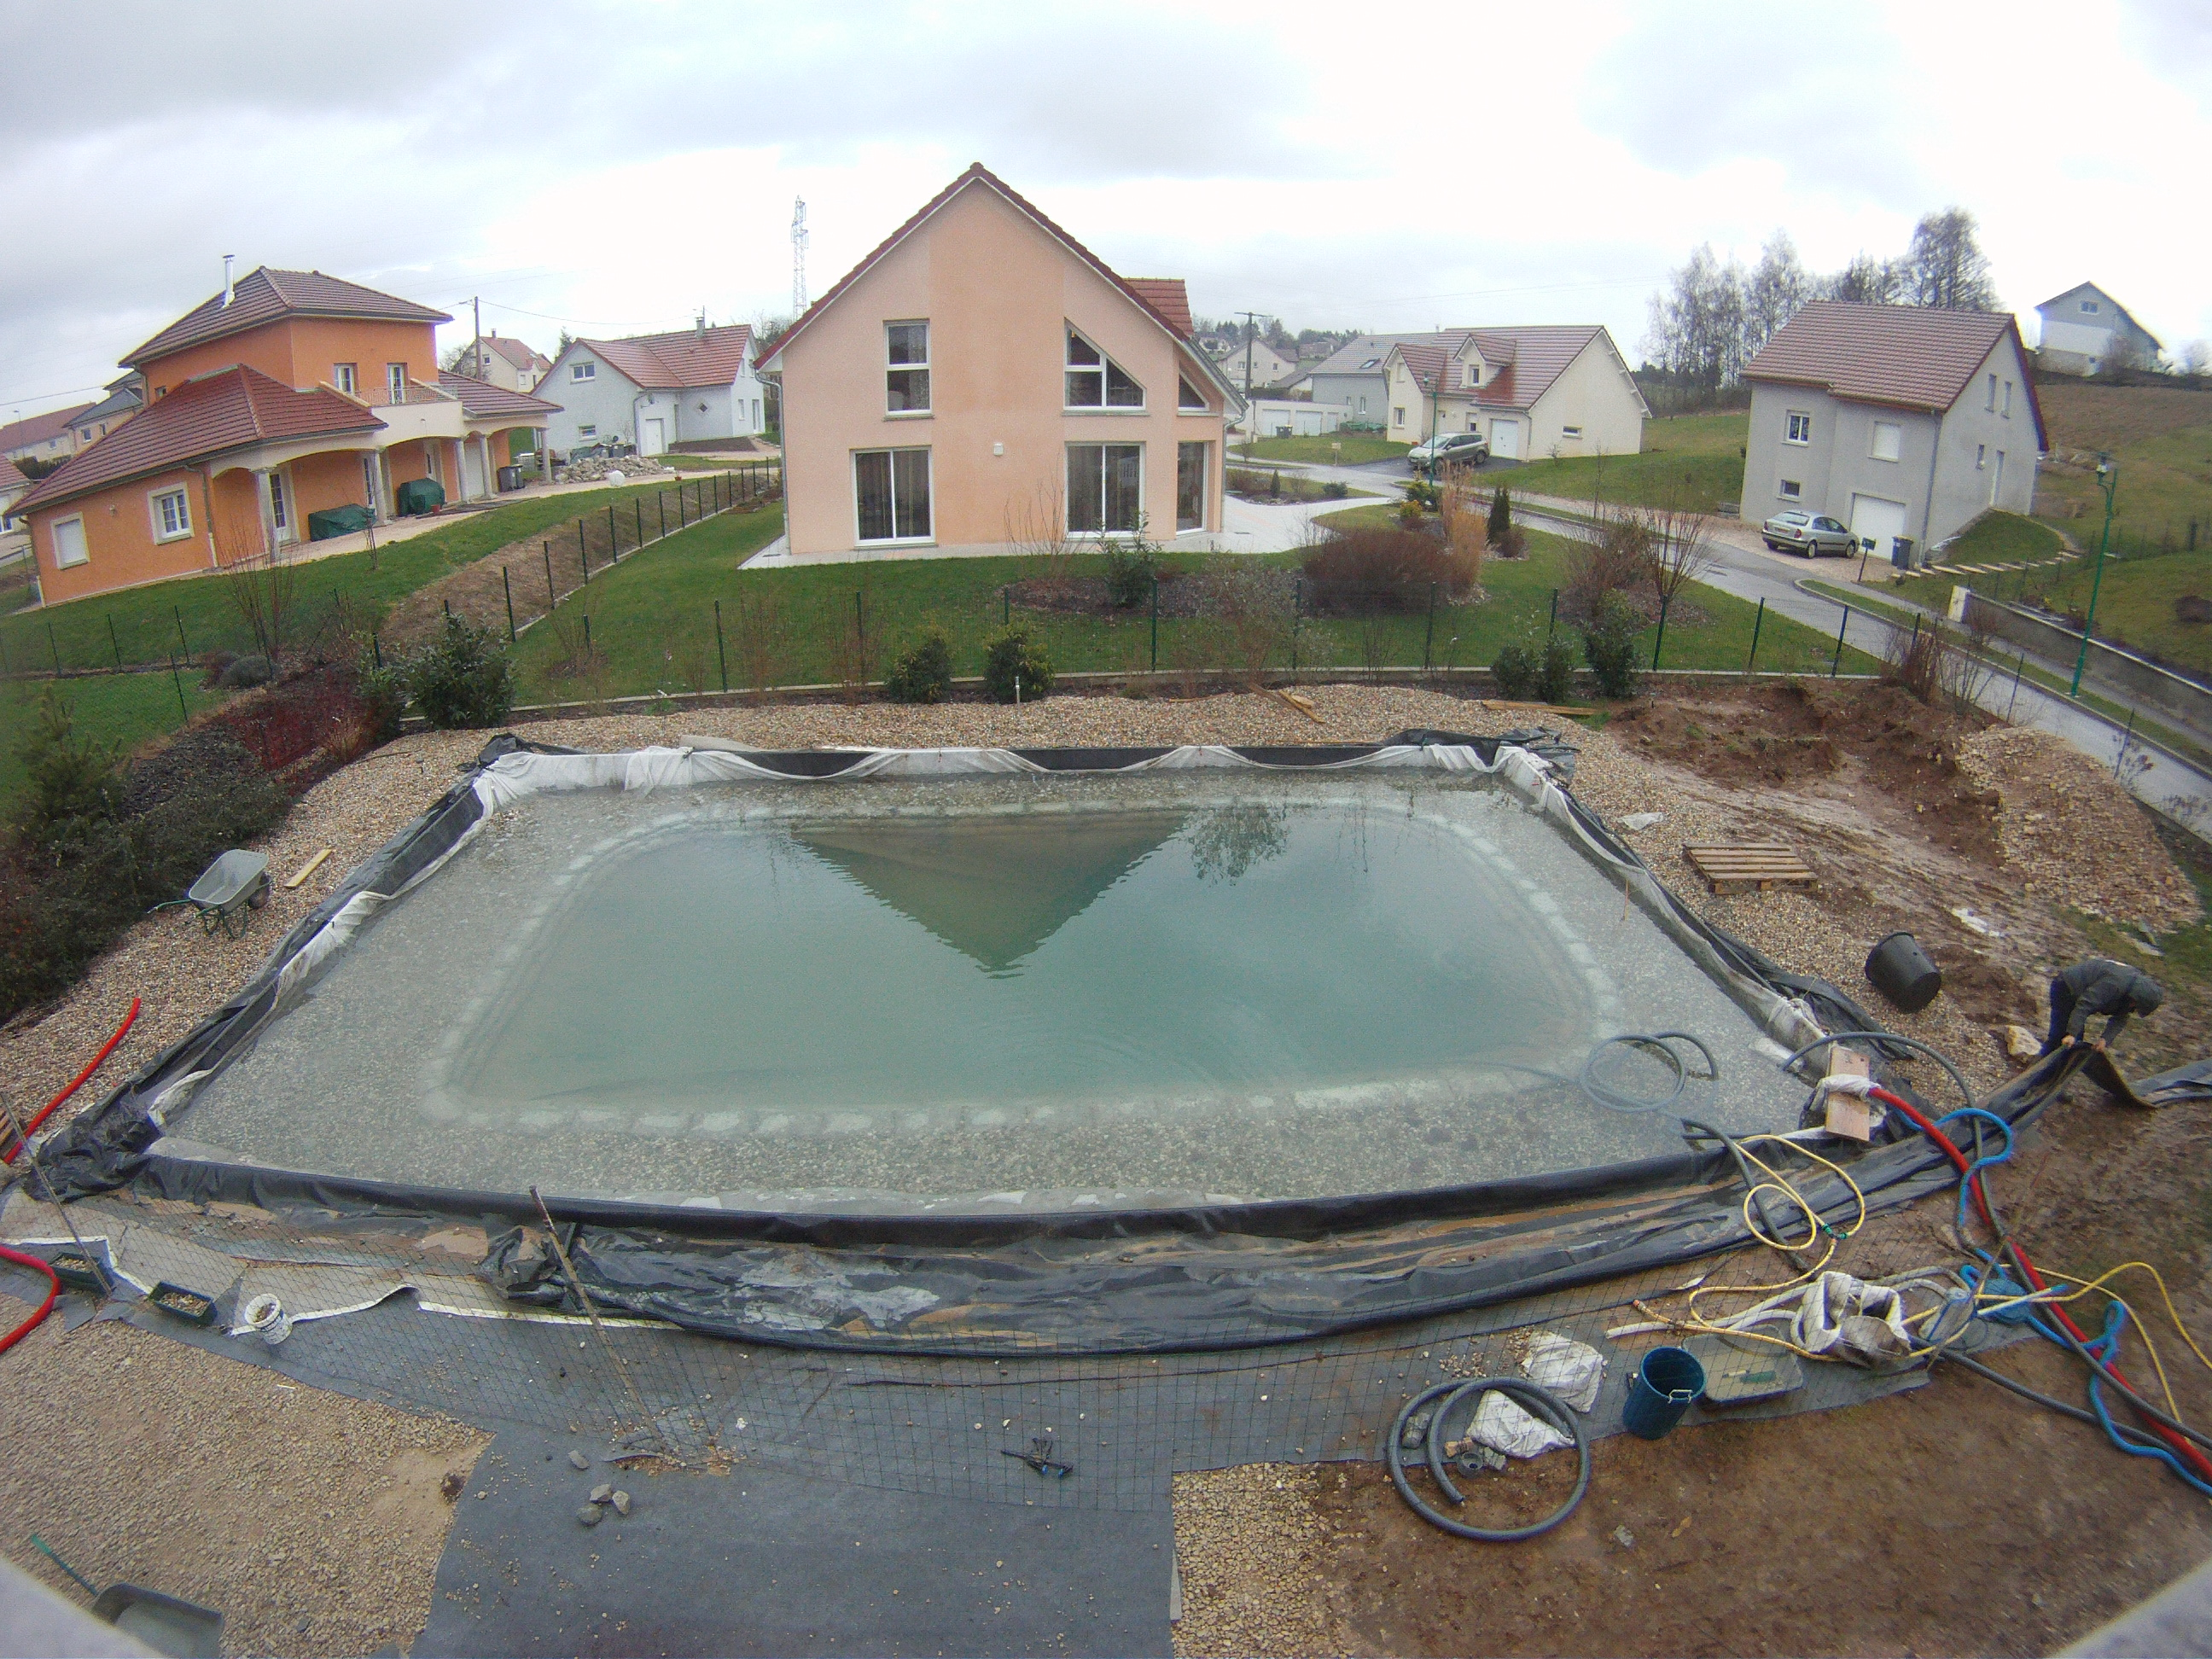 D coupe de la b che piscine naturellepiscine naturelle for Piscine avec bache epdm